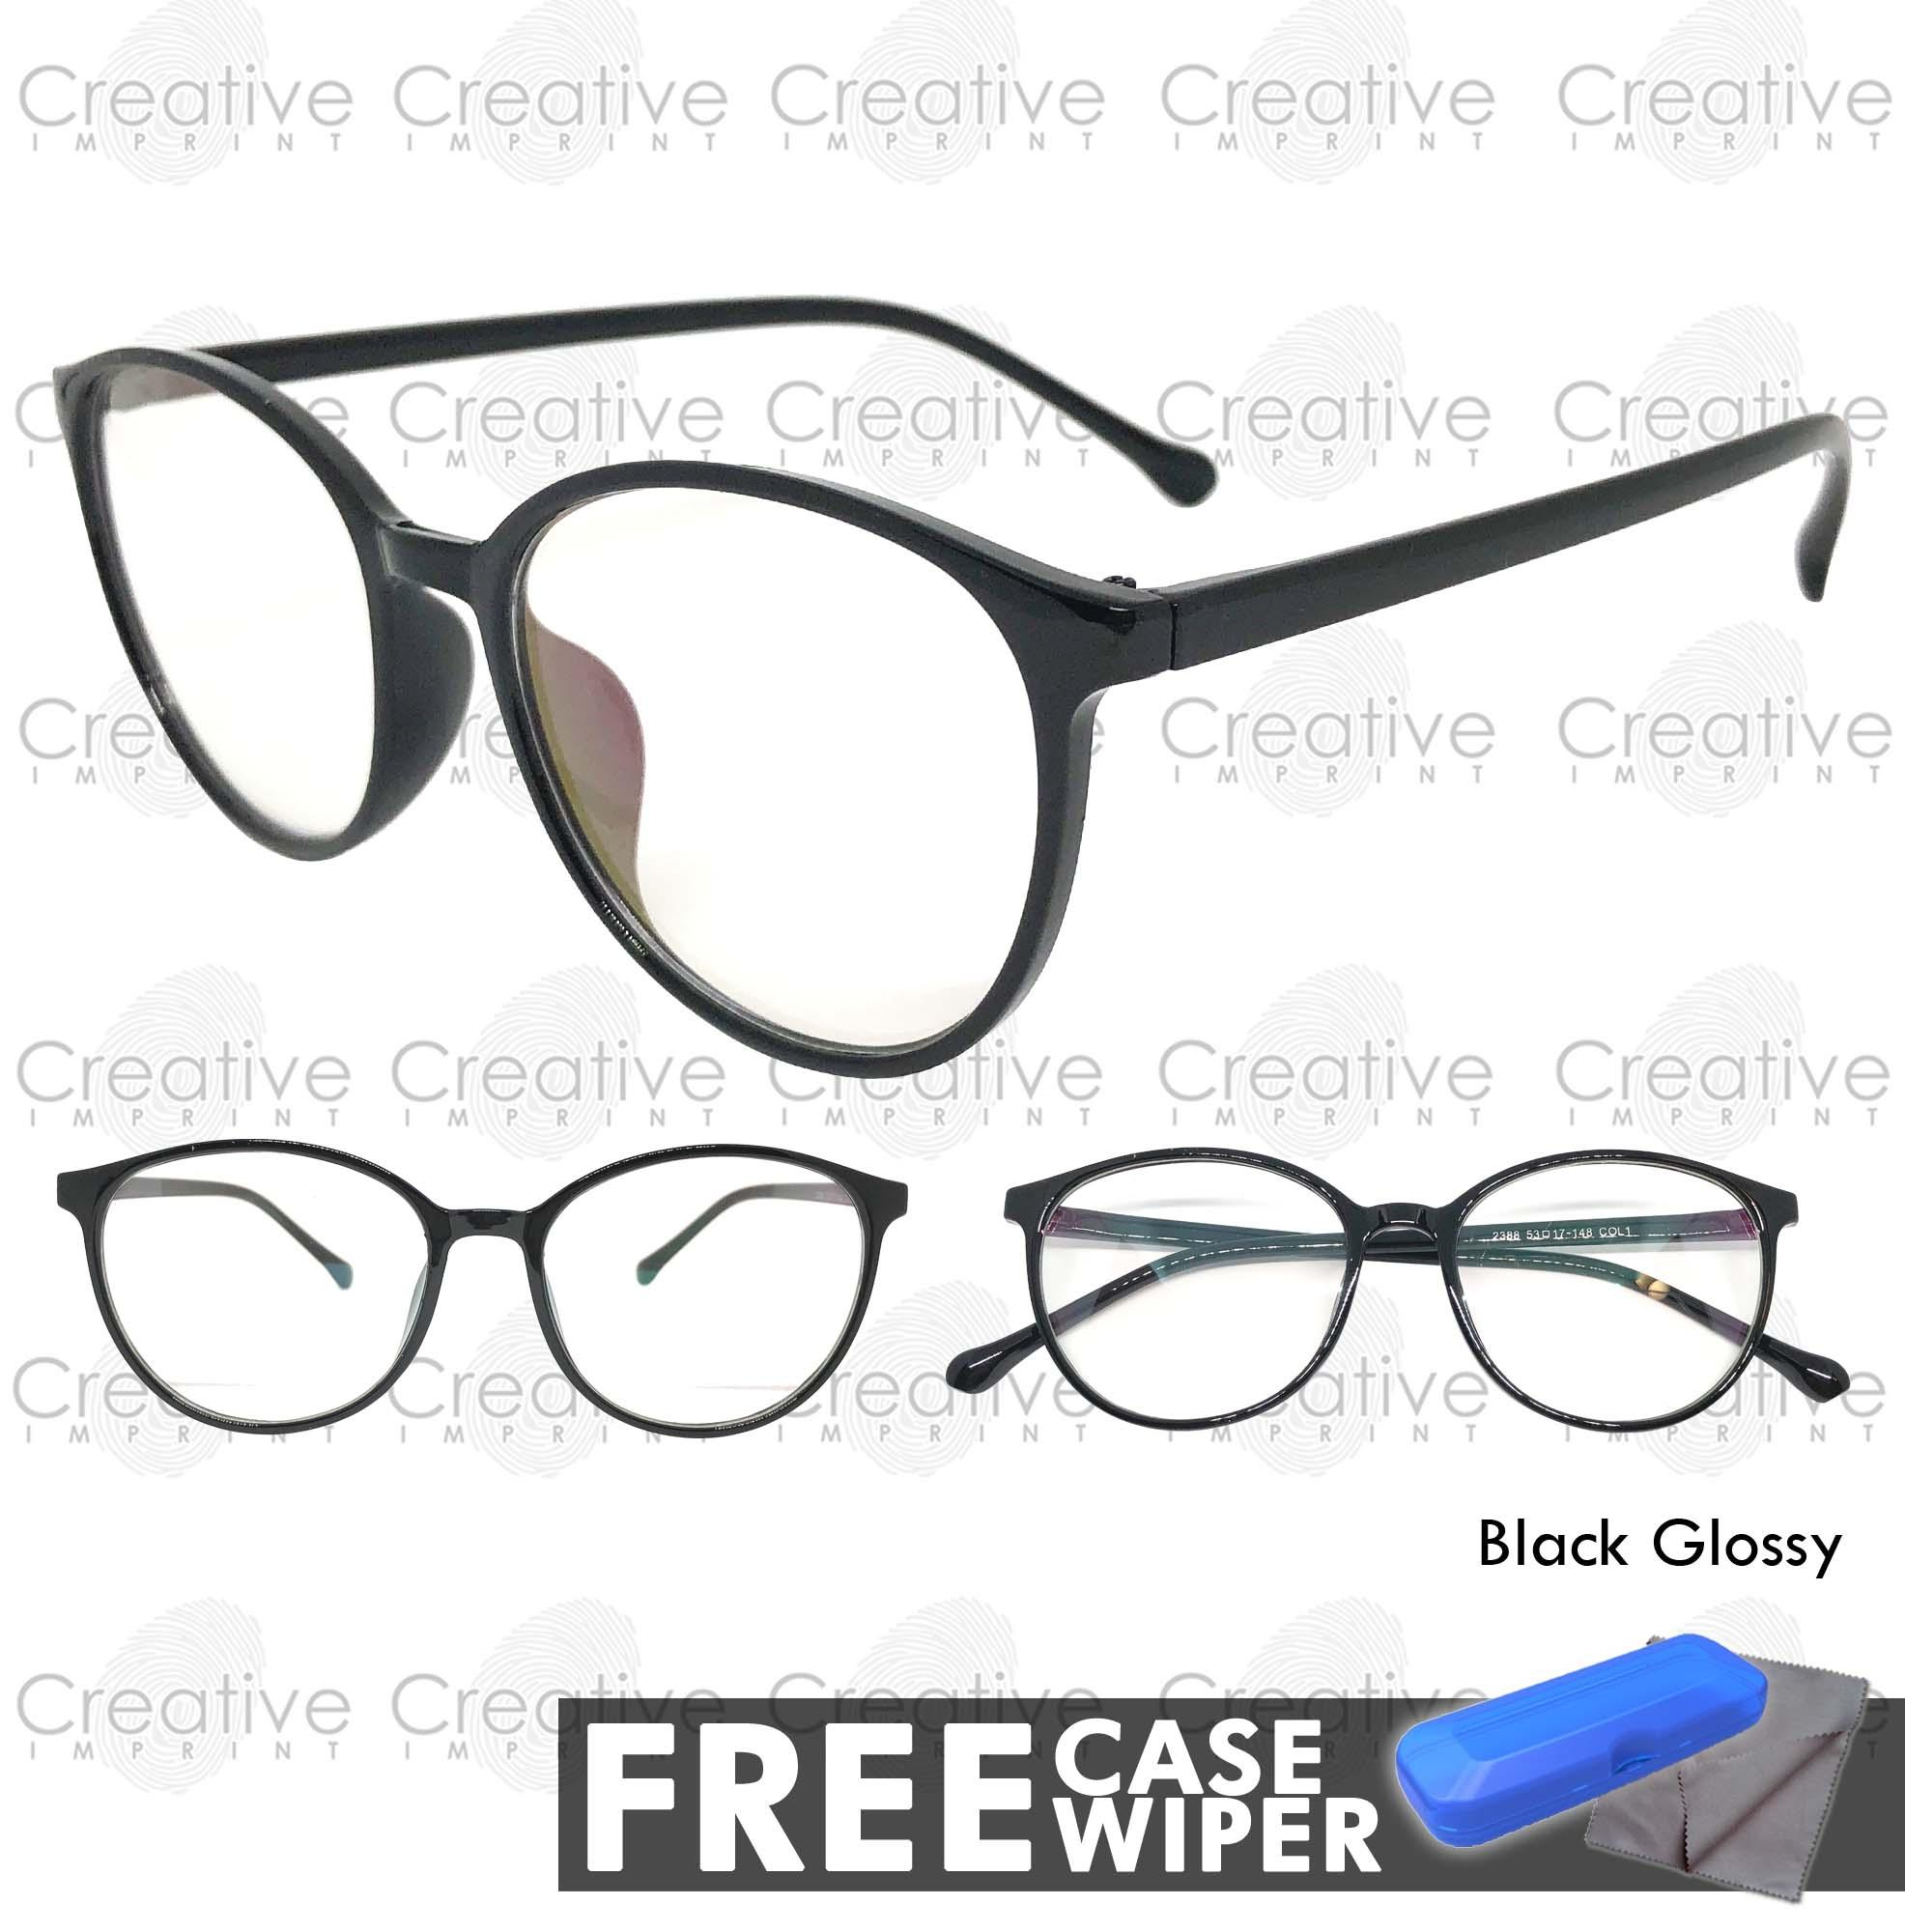 778e0333ecb Creative Imprint Eyeglasses Anti-Radiation Lens ( 05 Black Glossy) Anti- Fatigue